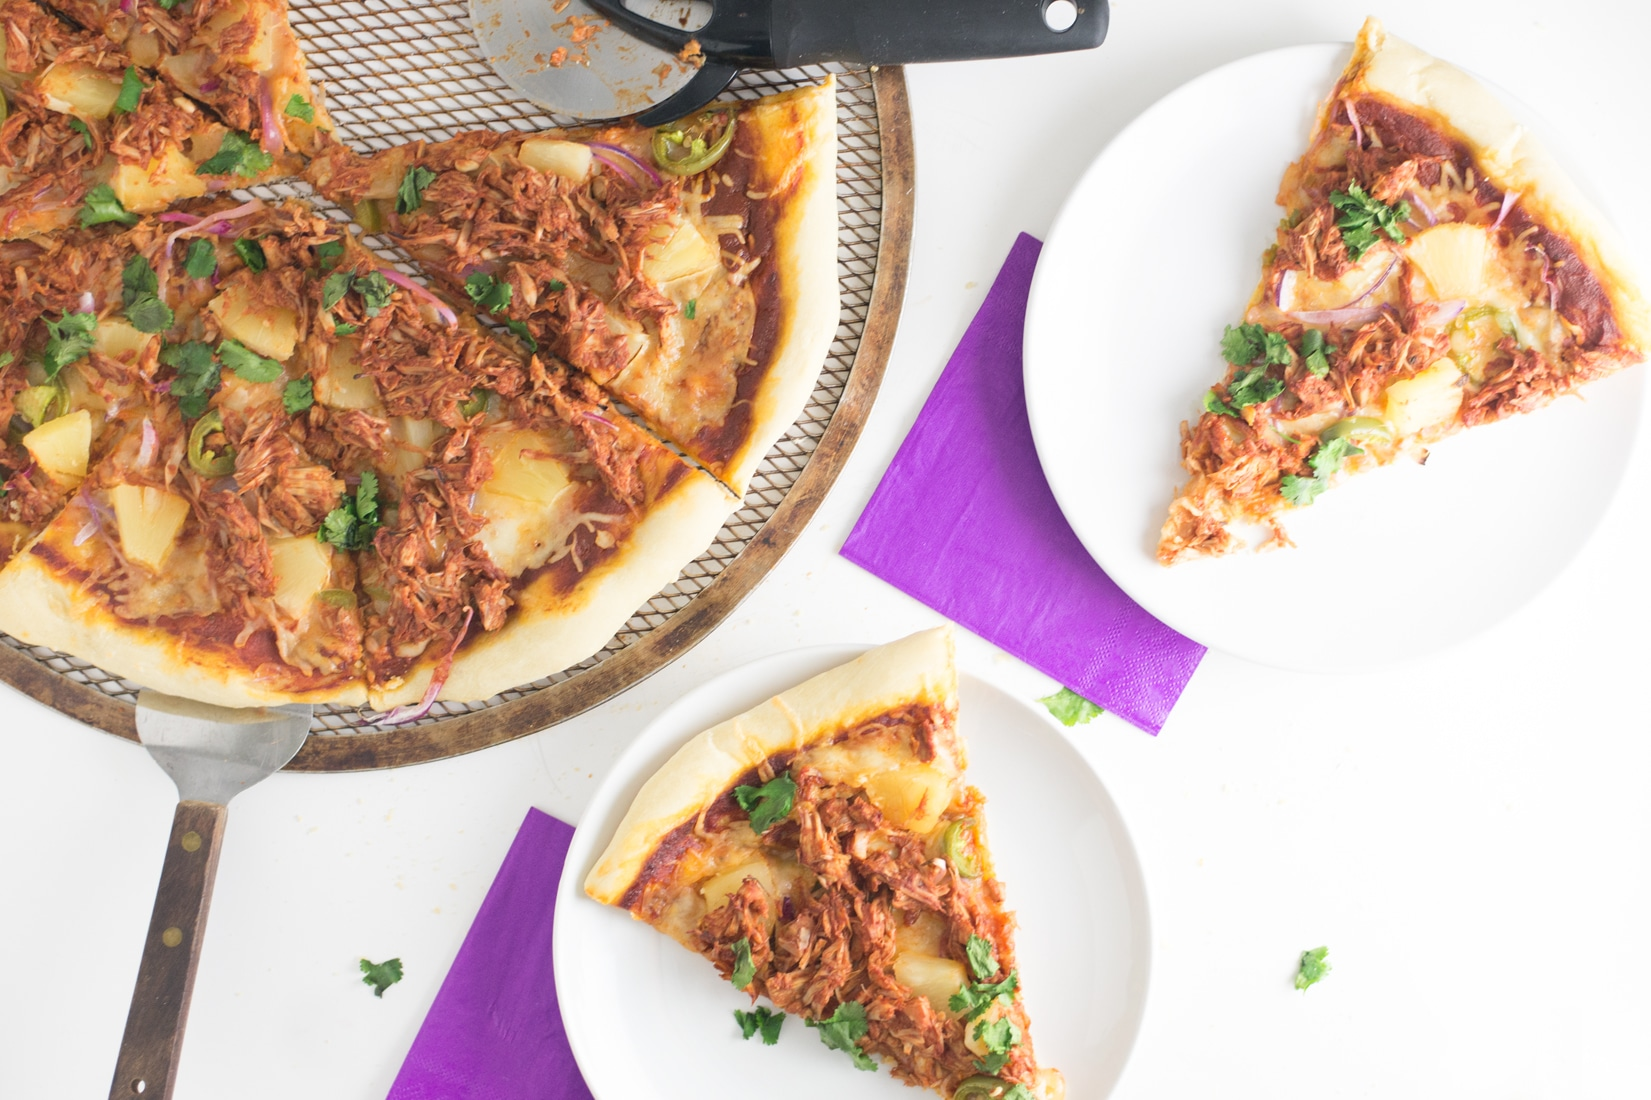 jackfruit pulled pork pizza with purple napkins and white plates